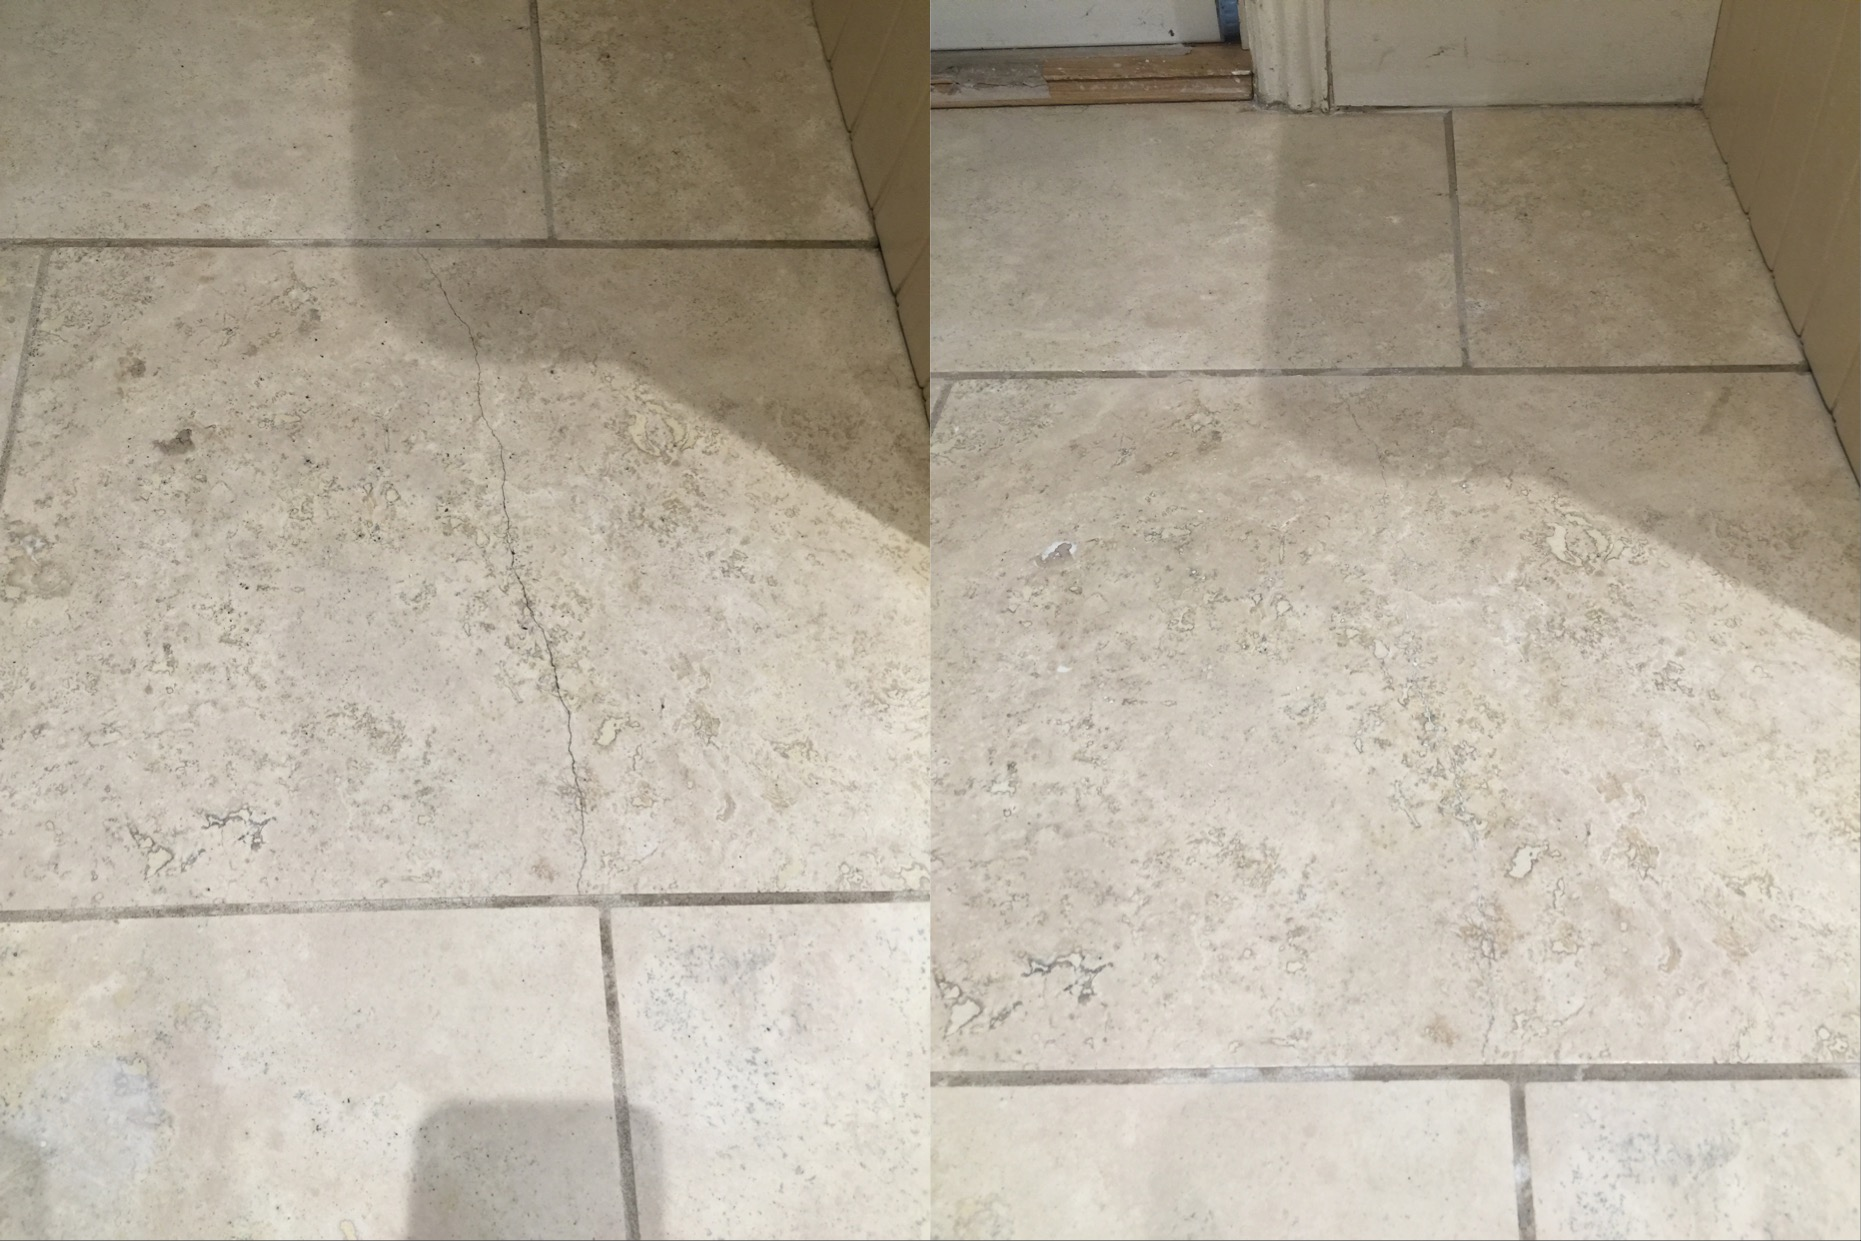 Stone cleaning and polishing tips for travertine floors polishing travertine tiled kitchen floor dailygadgetfo Image collections